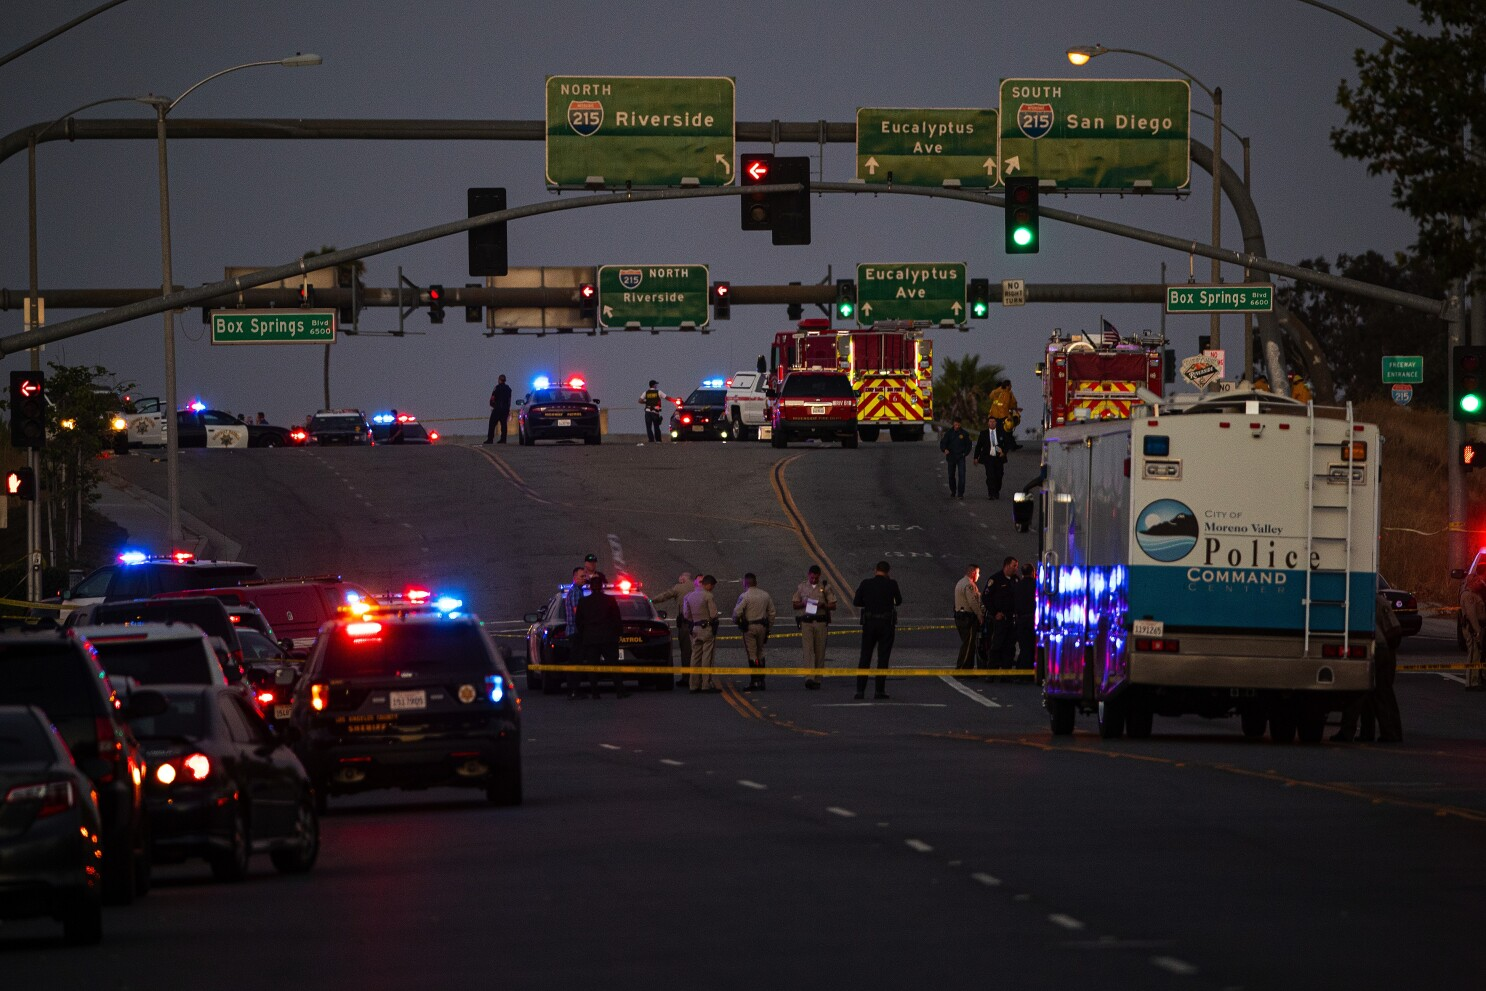 Rifle used in deadly Riverside shooting was untraceable 'ghost gun,' sources say